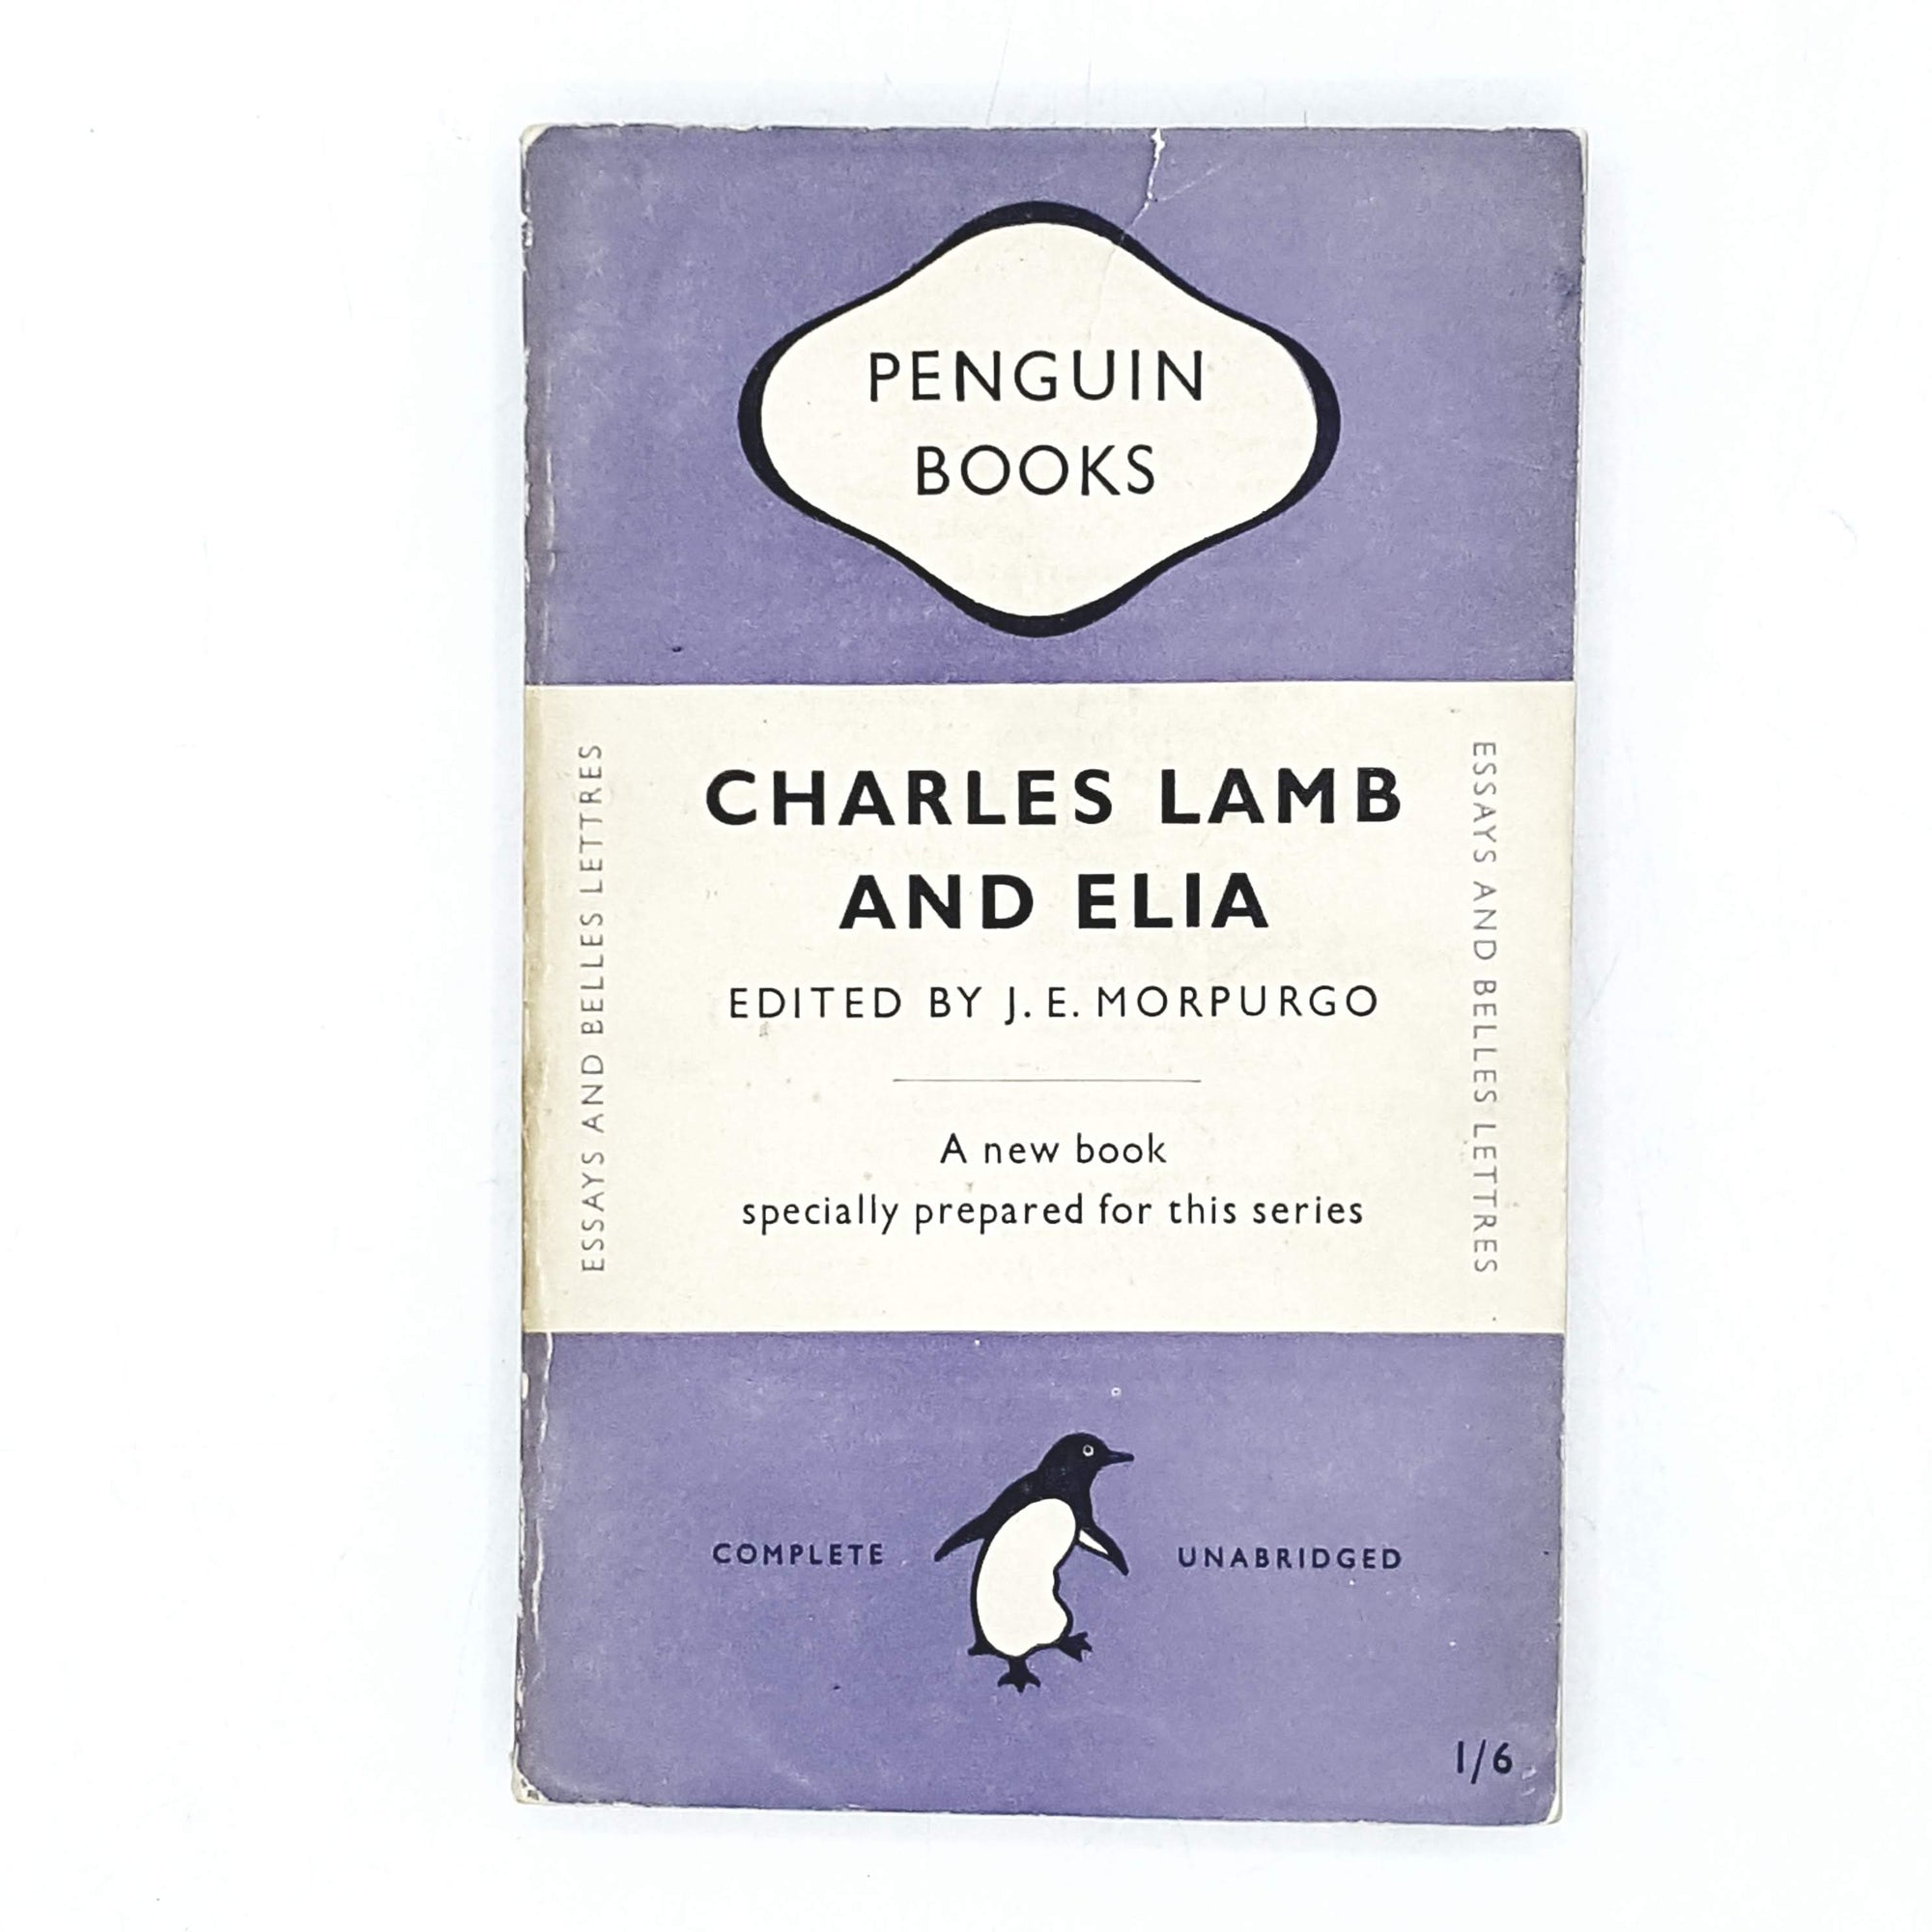 Charles Lamb and Elia by J. E. Morpurgo 1948